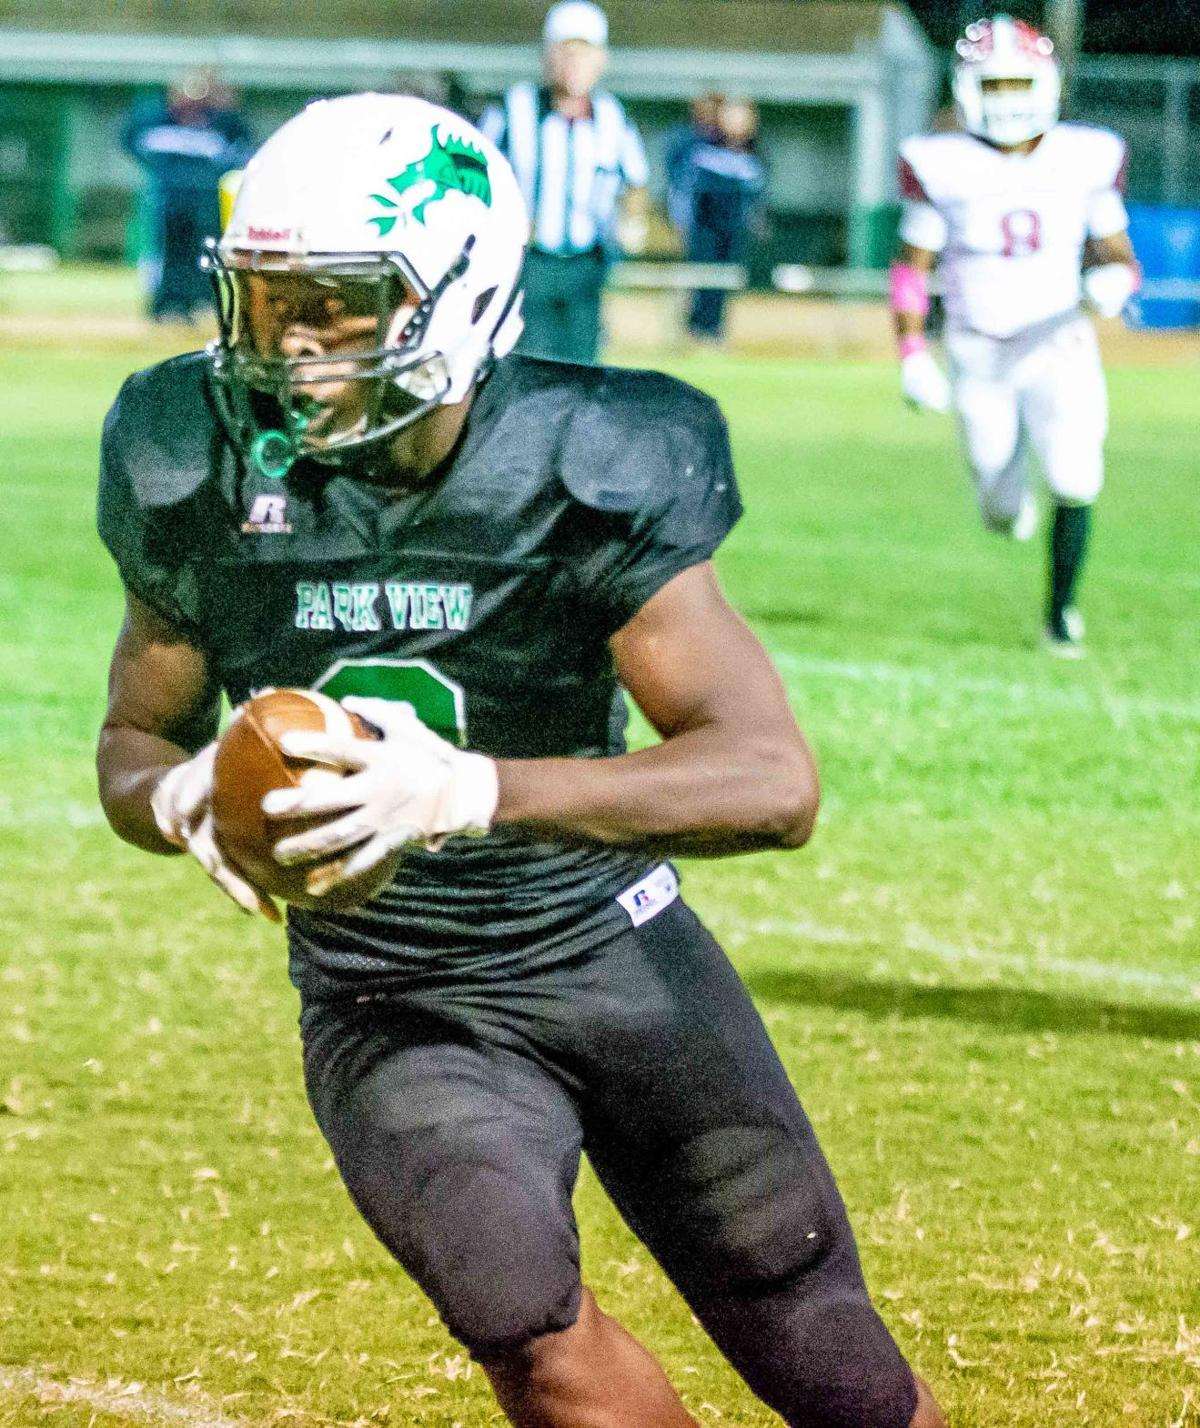 Park View HS receiver Dontavious Wilson grabbed seven passes for 131 yards and two touchdowns on Friday night but the Dragons' gave up a late score and fell 34-29 to visiting Sussex-Central HS. (Dennis Smith)